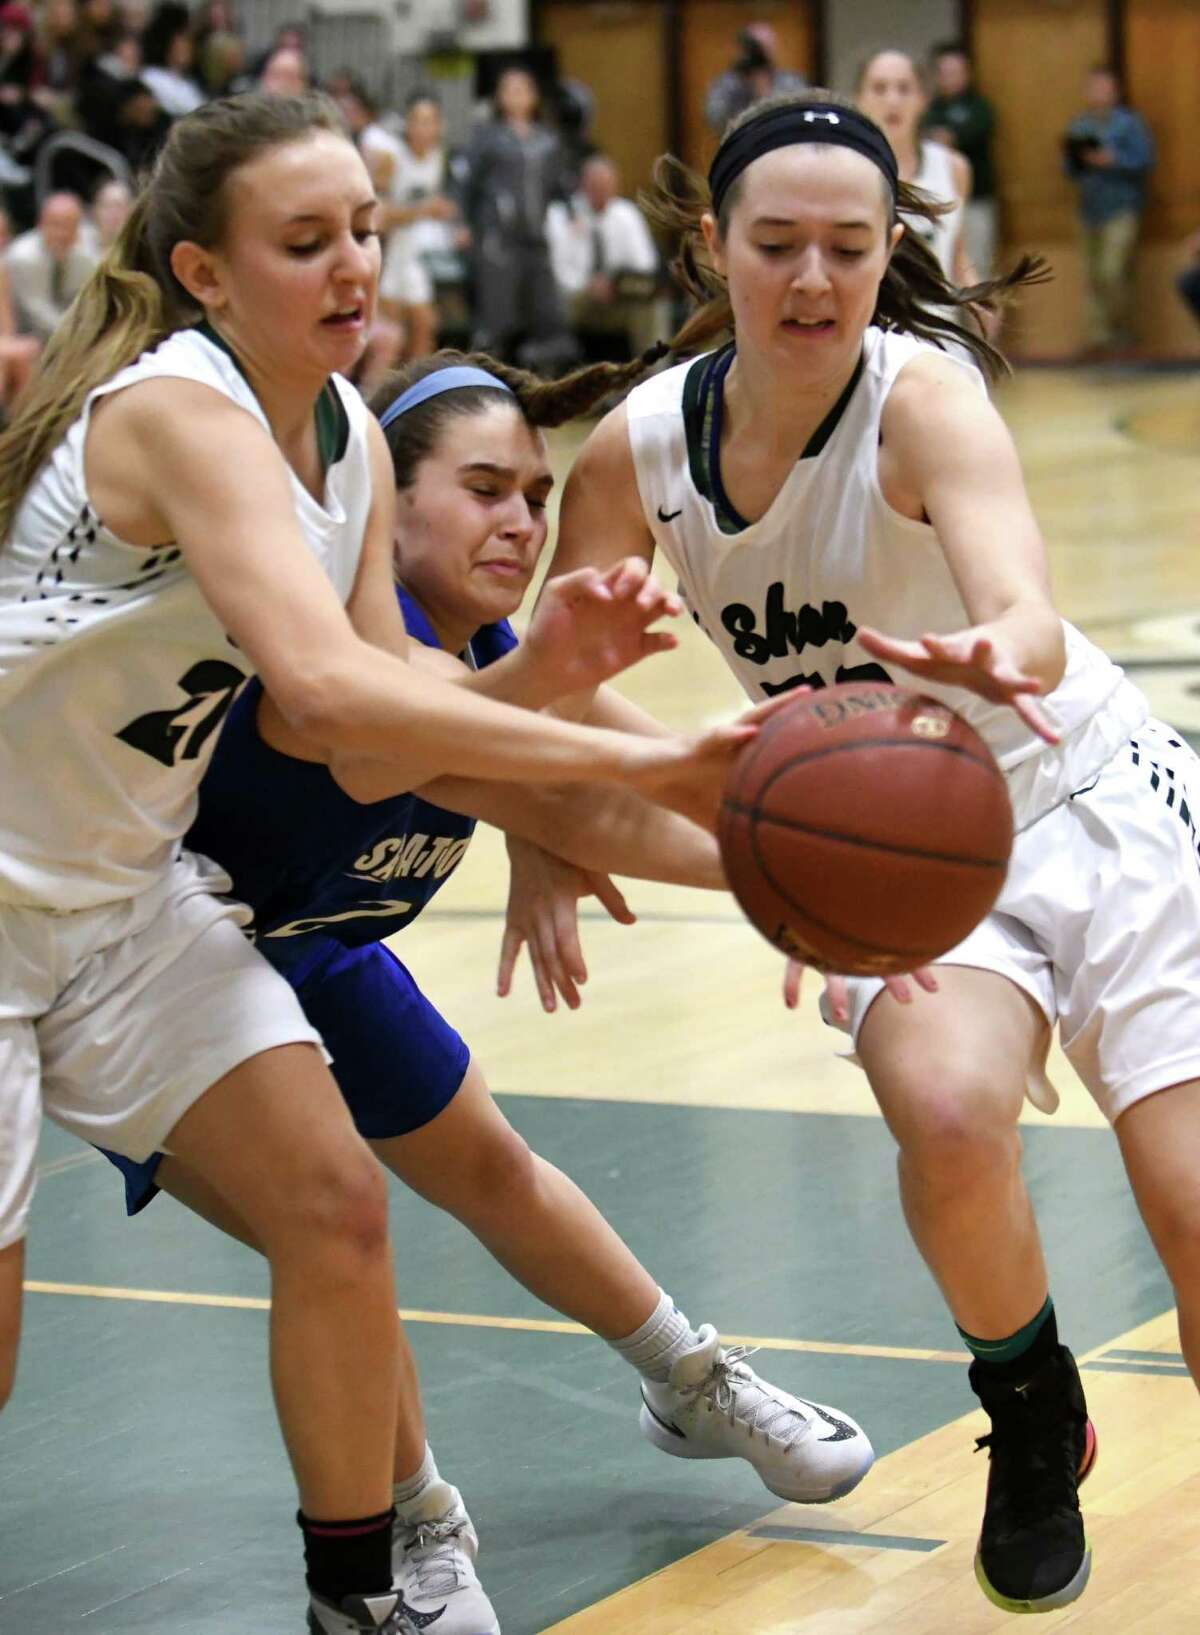 Shen's Anna Milham and Alexa Knudsen battle for a rebound with Saratoga's Kara Vamvalis during their girl's high school basketball game on Wednesday Dec. 21, 2016 in Clifton Park, N.Y. (Michael P. Farrell/Times Union)